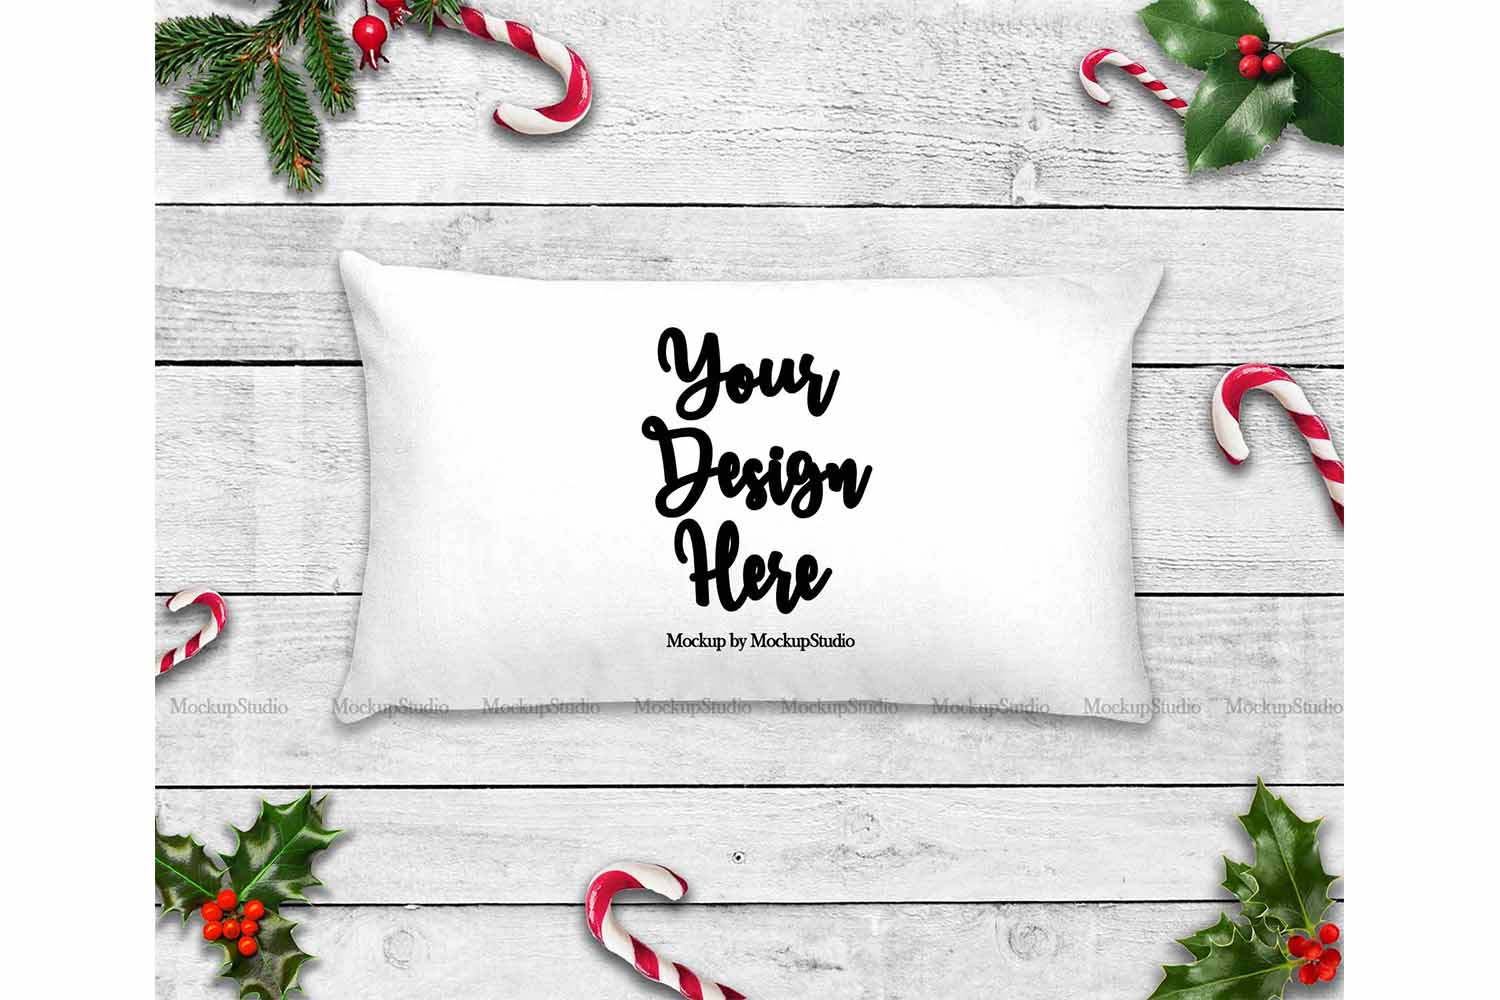 Throw Pillow Mockup Bundle 6 Images, Pillow Flat Lay Display example image 6